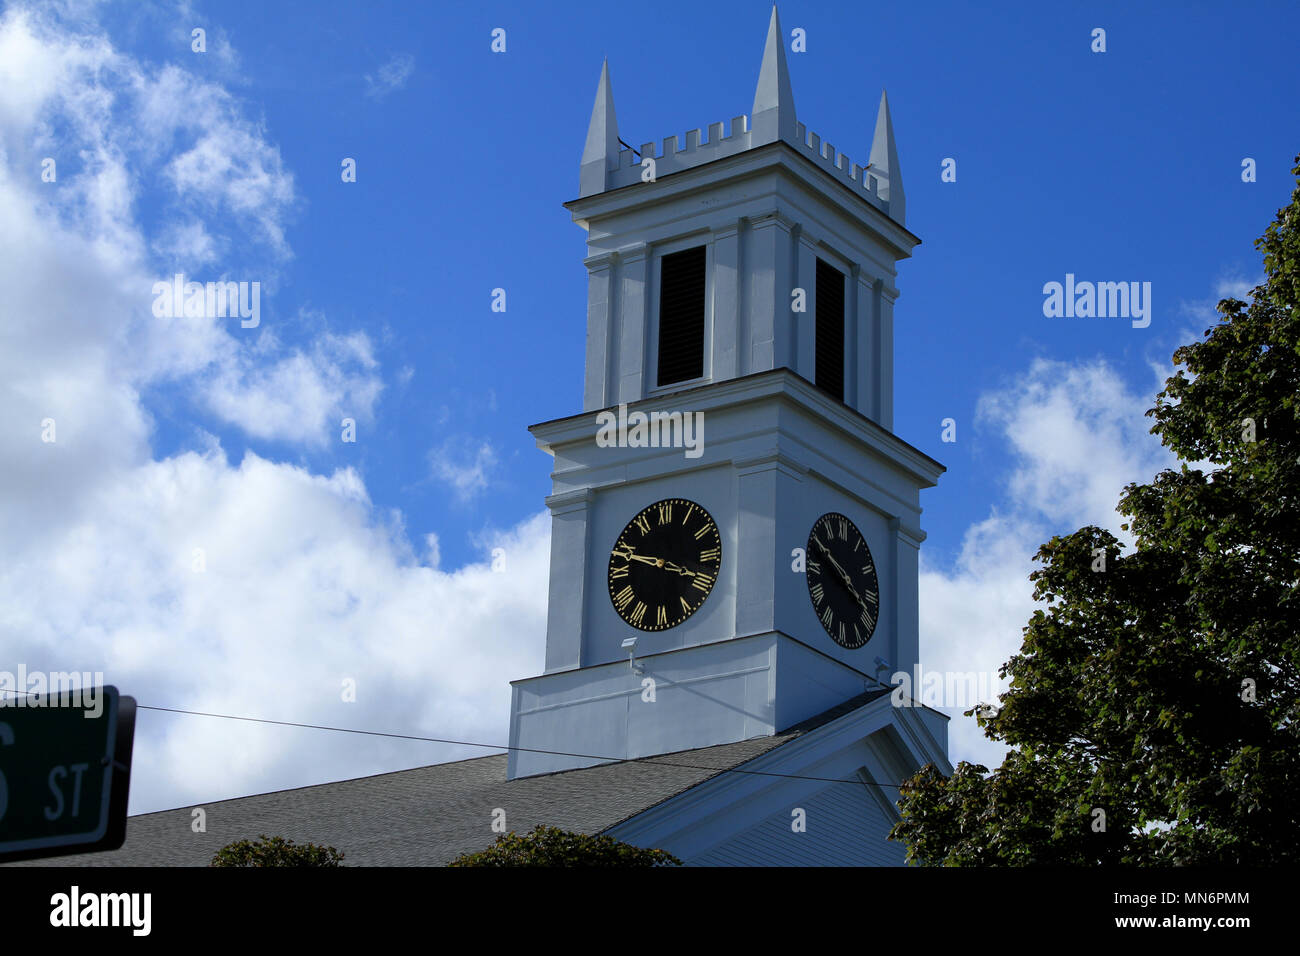 Steeple of the First United Methodist Church, Main Street, Chatham, Massachusetts, rising into a blue sky on an autumn day in New England Stock Photo